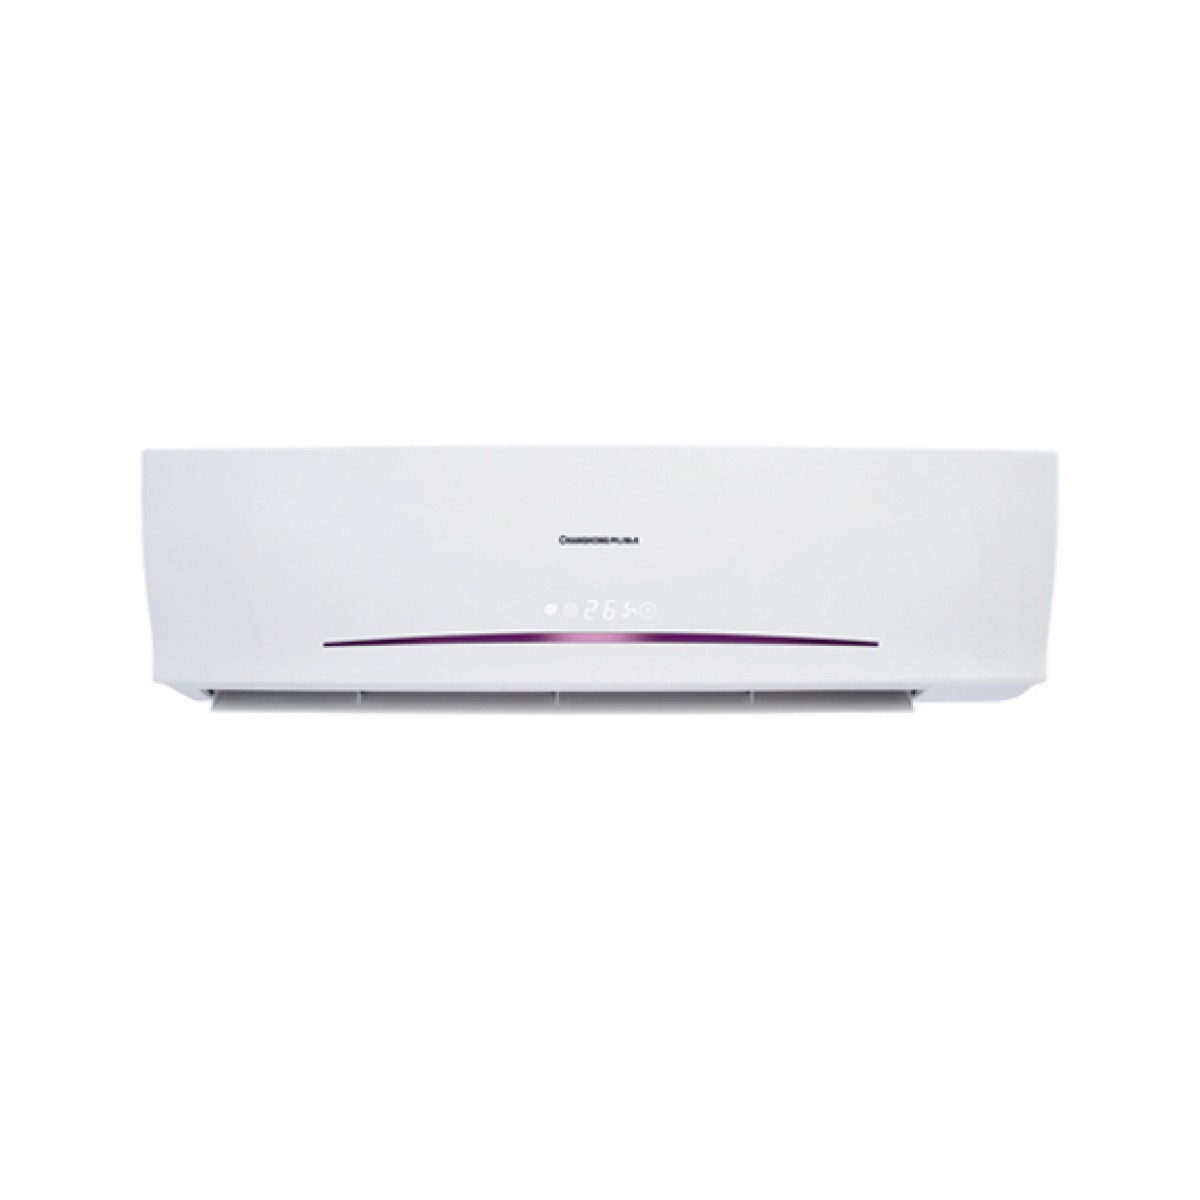 Air Conditioners CHANGHONG RUBA SPLIT AIR CONDITIONER 2.0 TON (CSC #491C4C